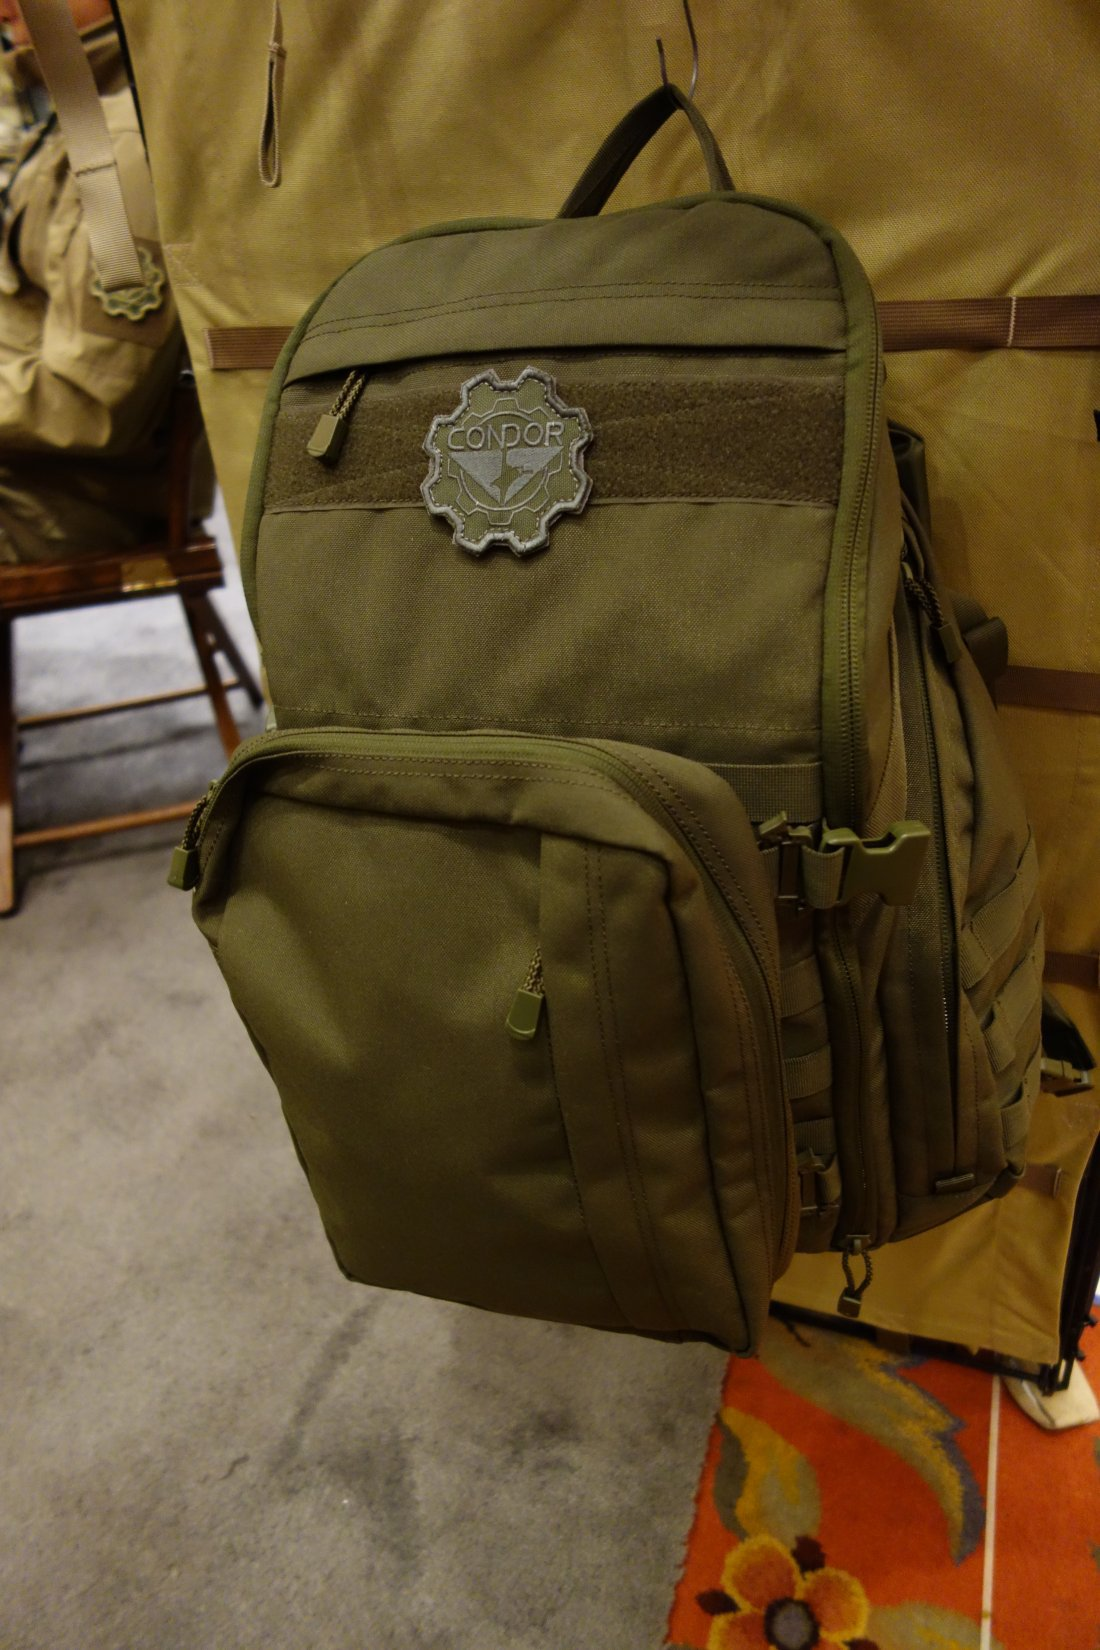 Condor Bison Backpack: Combat/Tactical Pack with Tactical Hydration Capability–and it can Carry Your Laptop! (Video!)